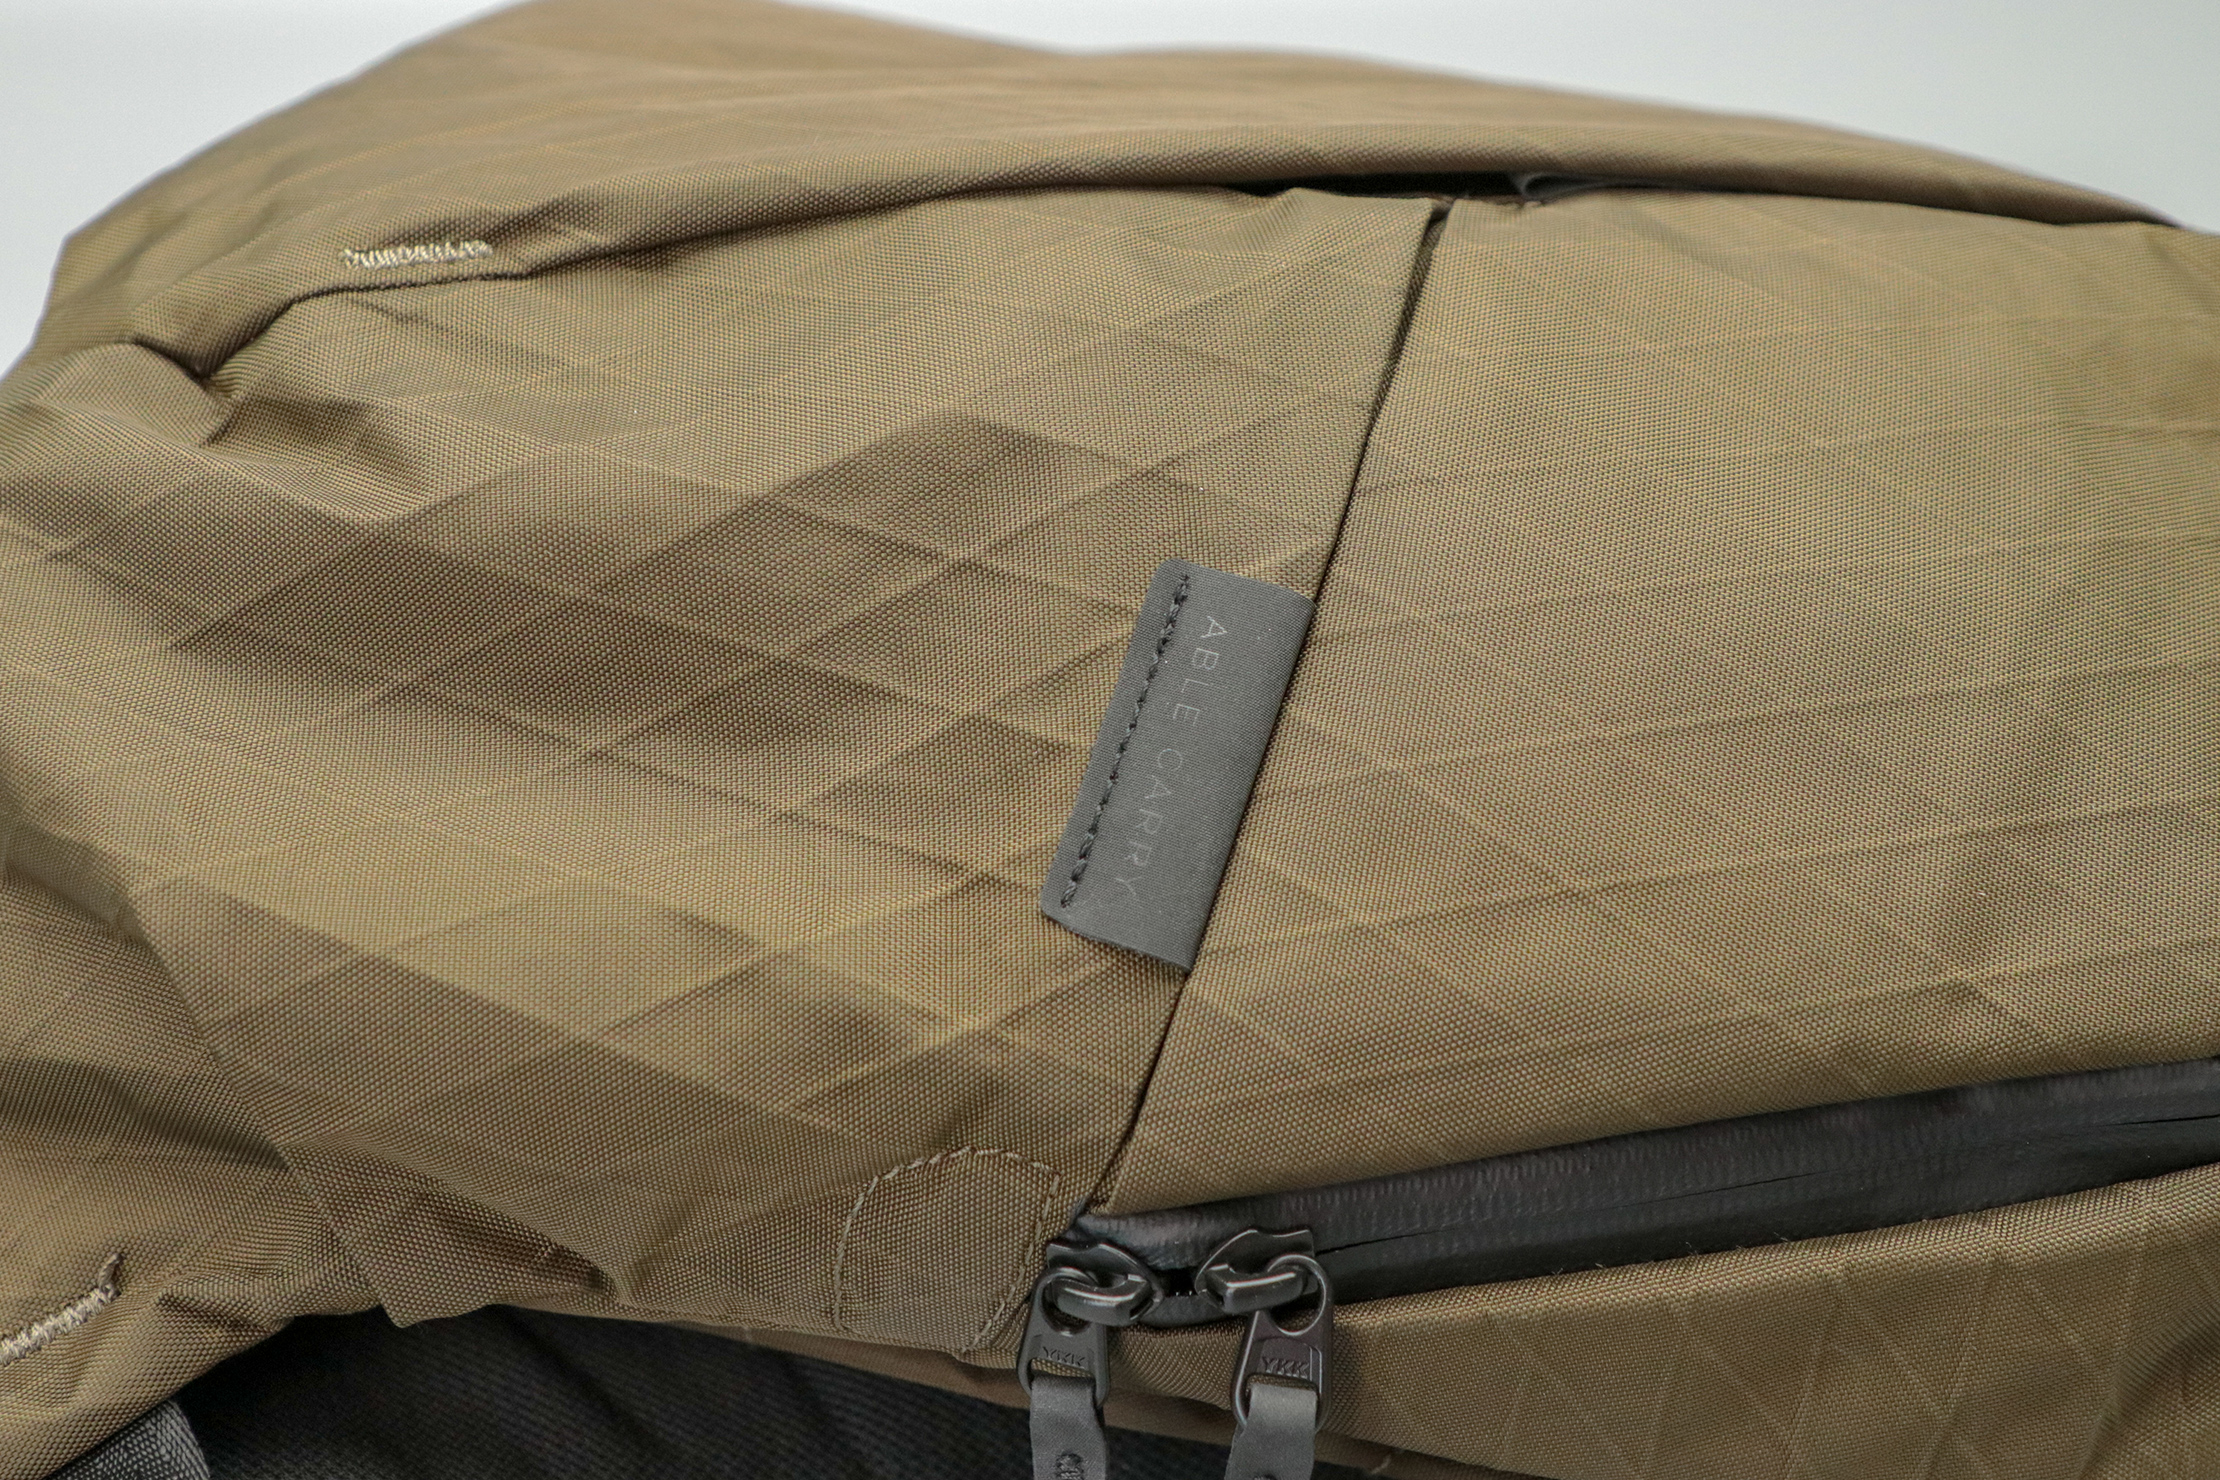 Able Carry Thirteen Daybag materials and zippers